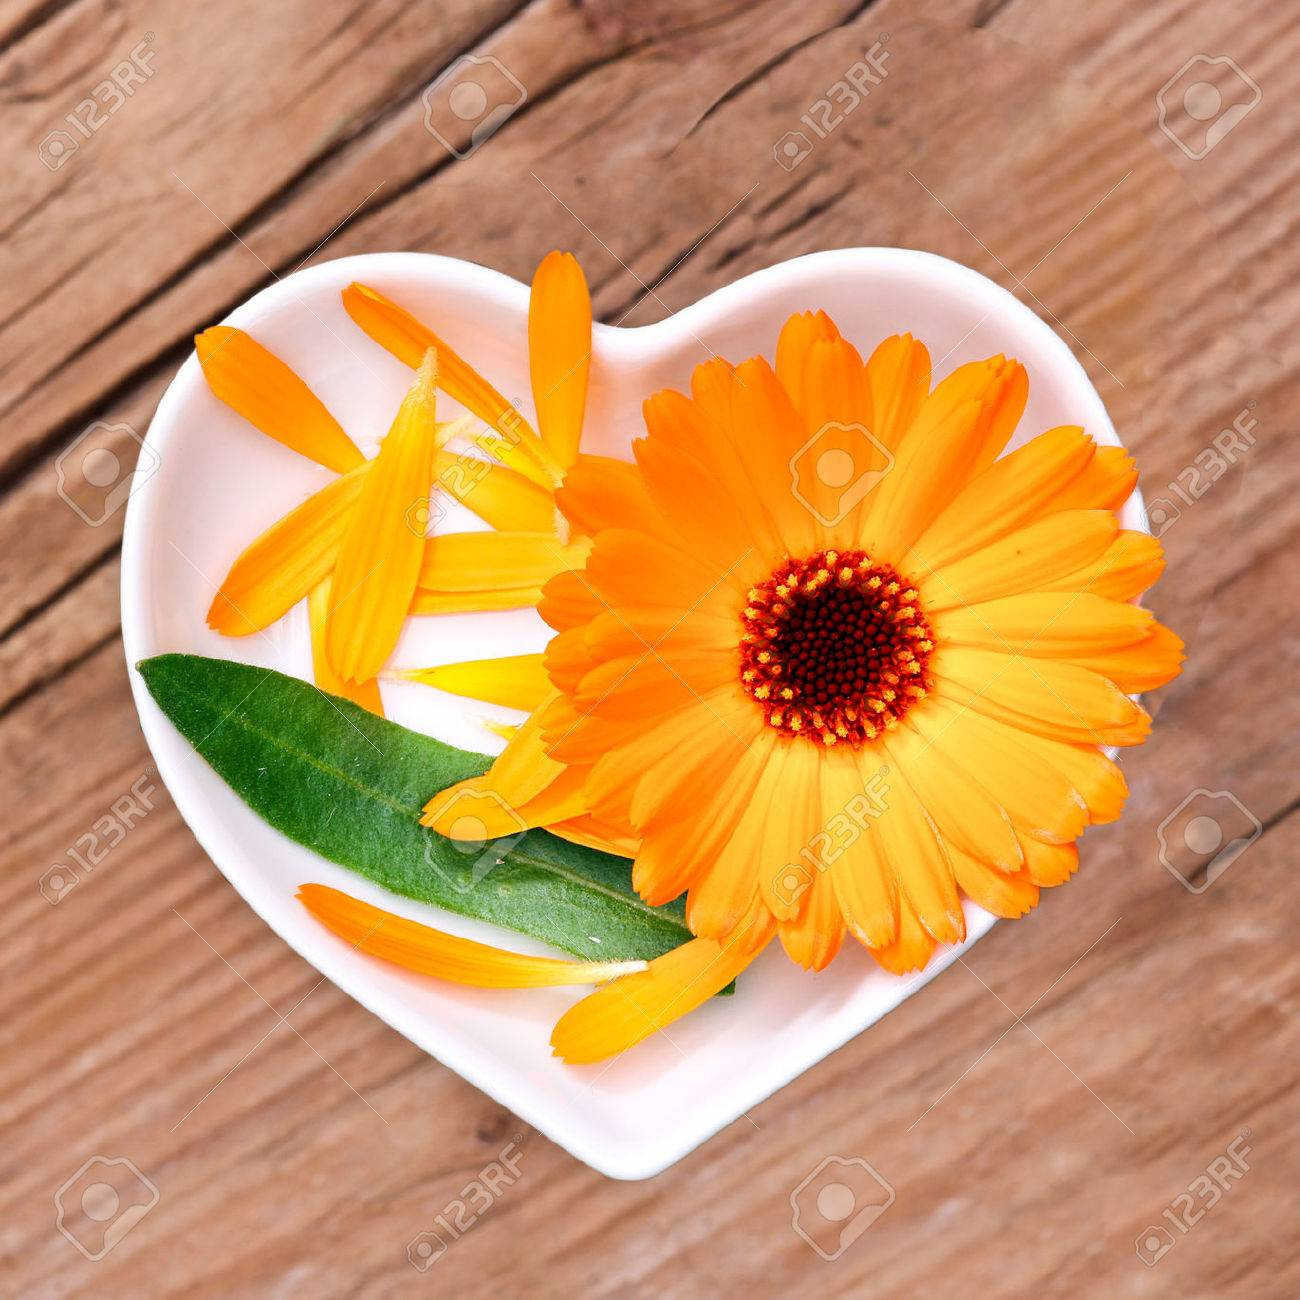 Homeopathy and cooking with calendula - 61826780